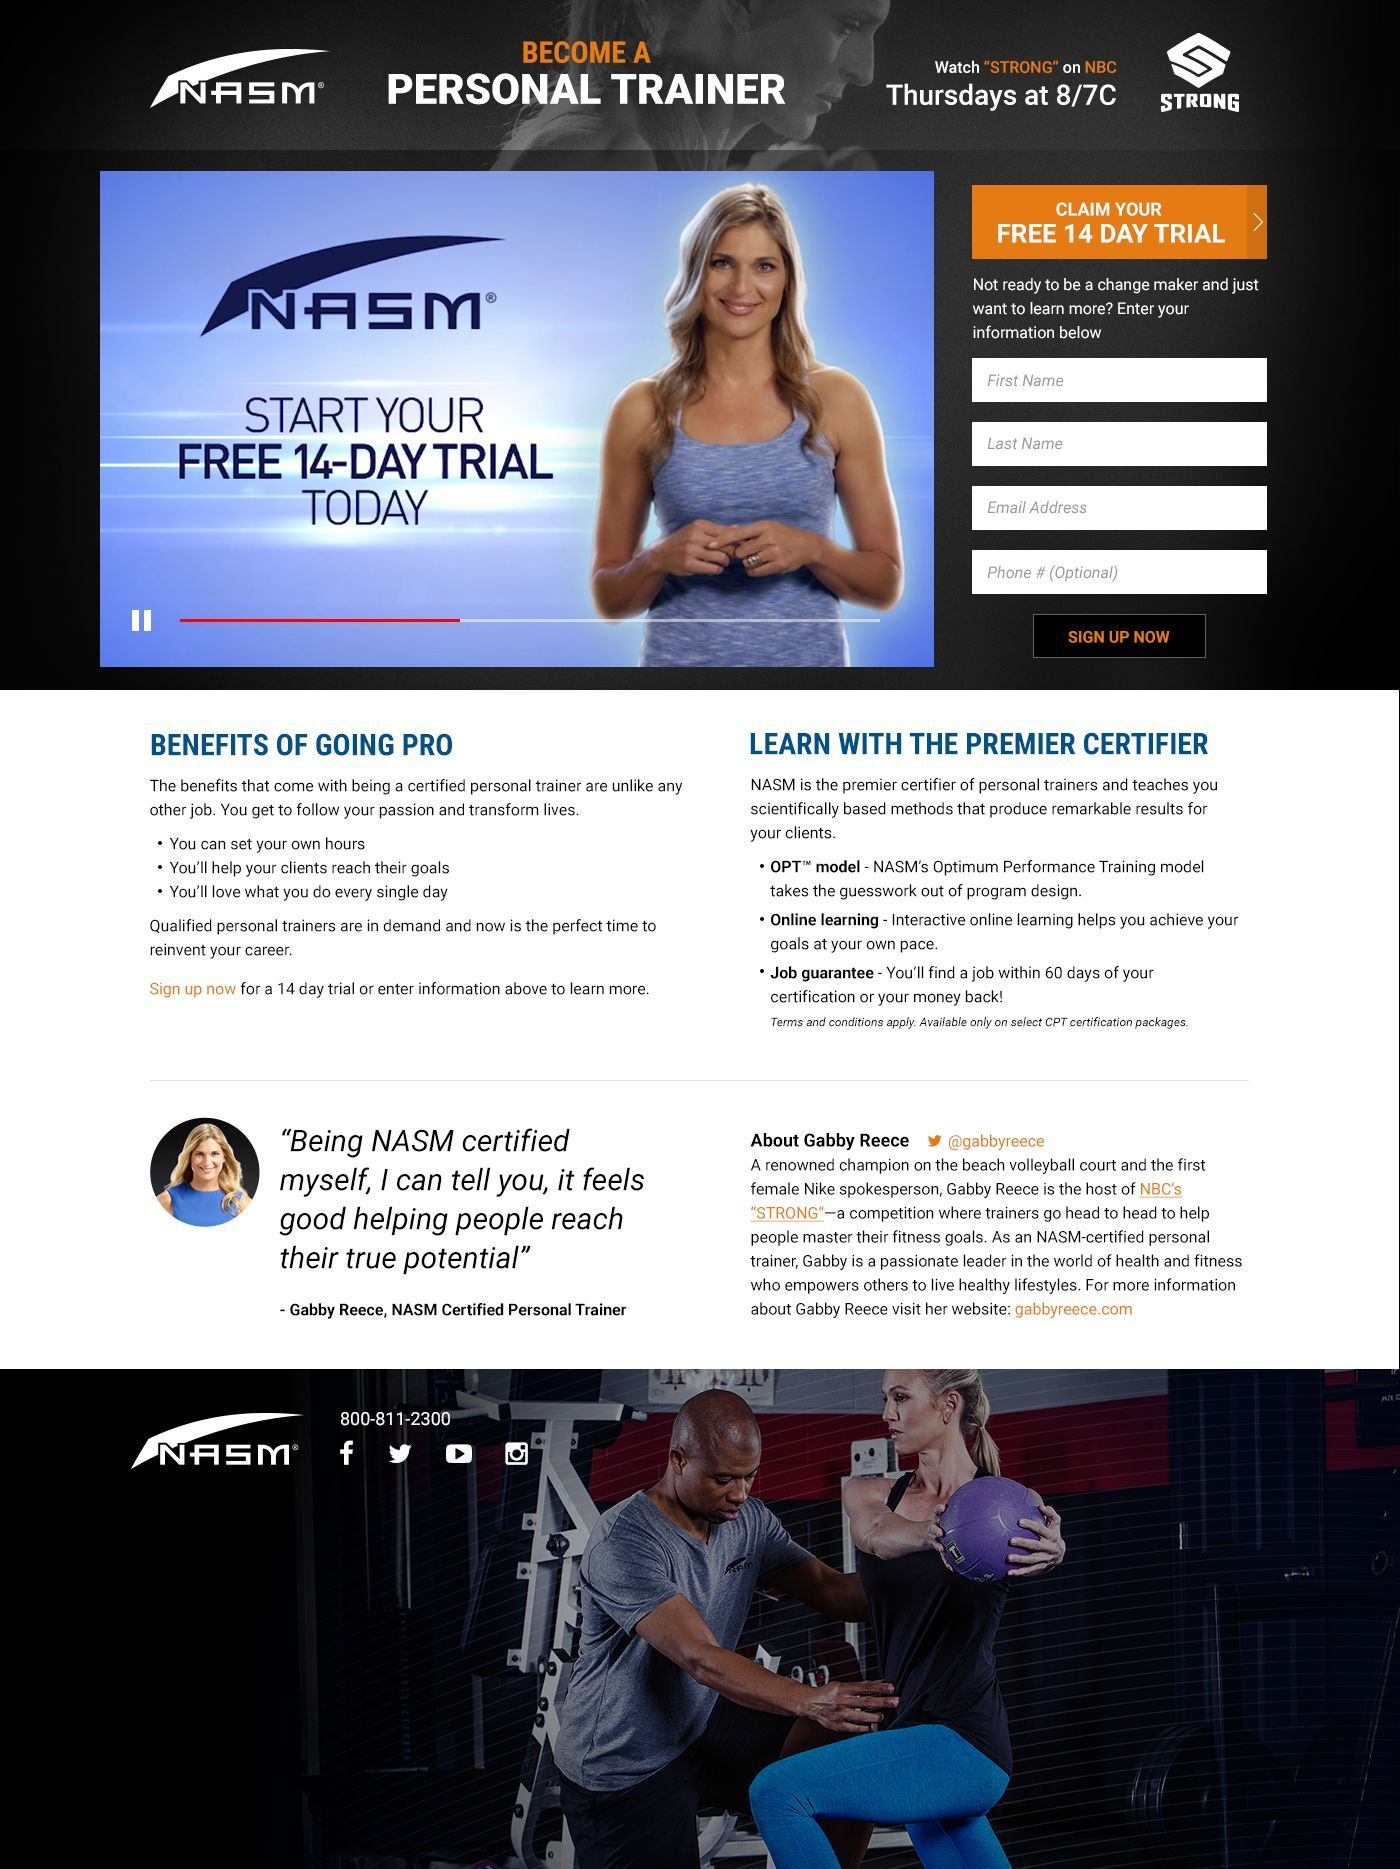 Become a personal trainer watch nasm on nbcs strong become a personal trainer 1betcityfo Image collections